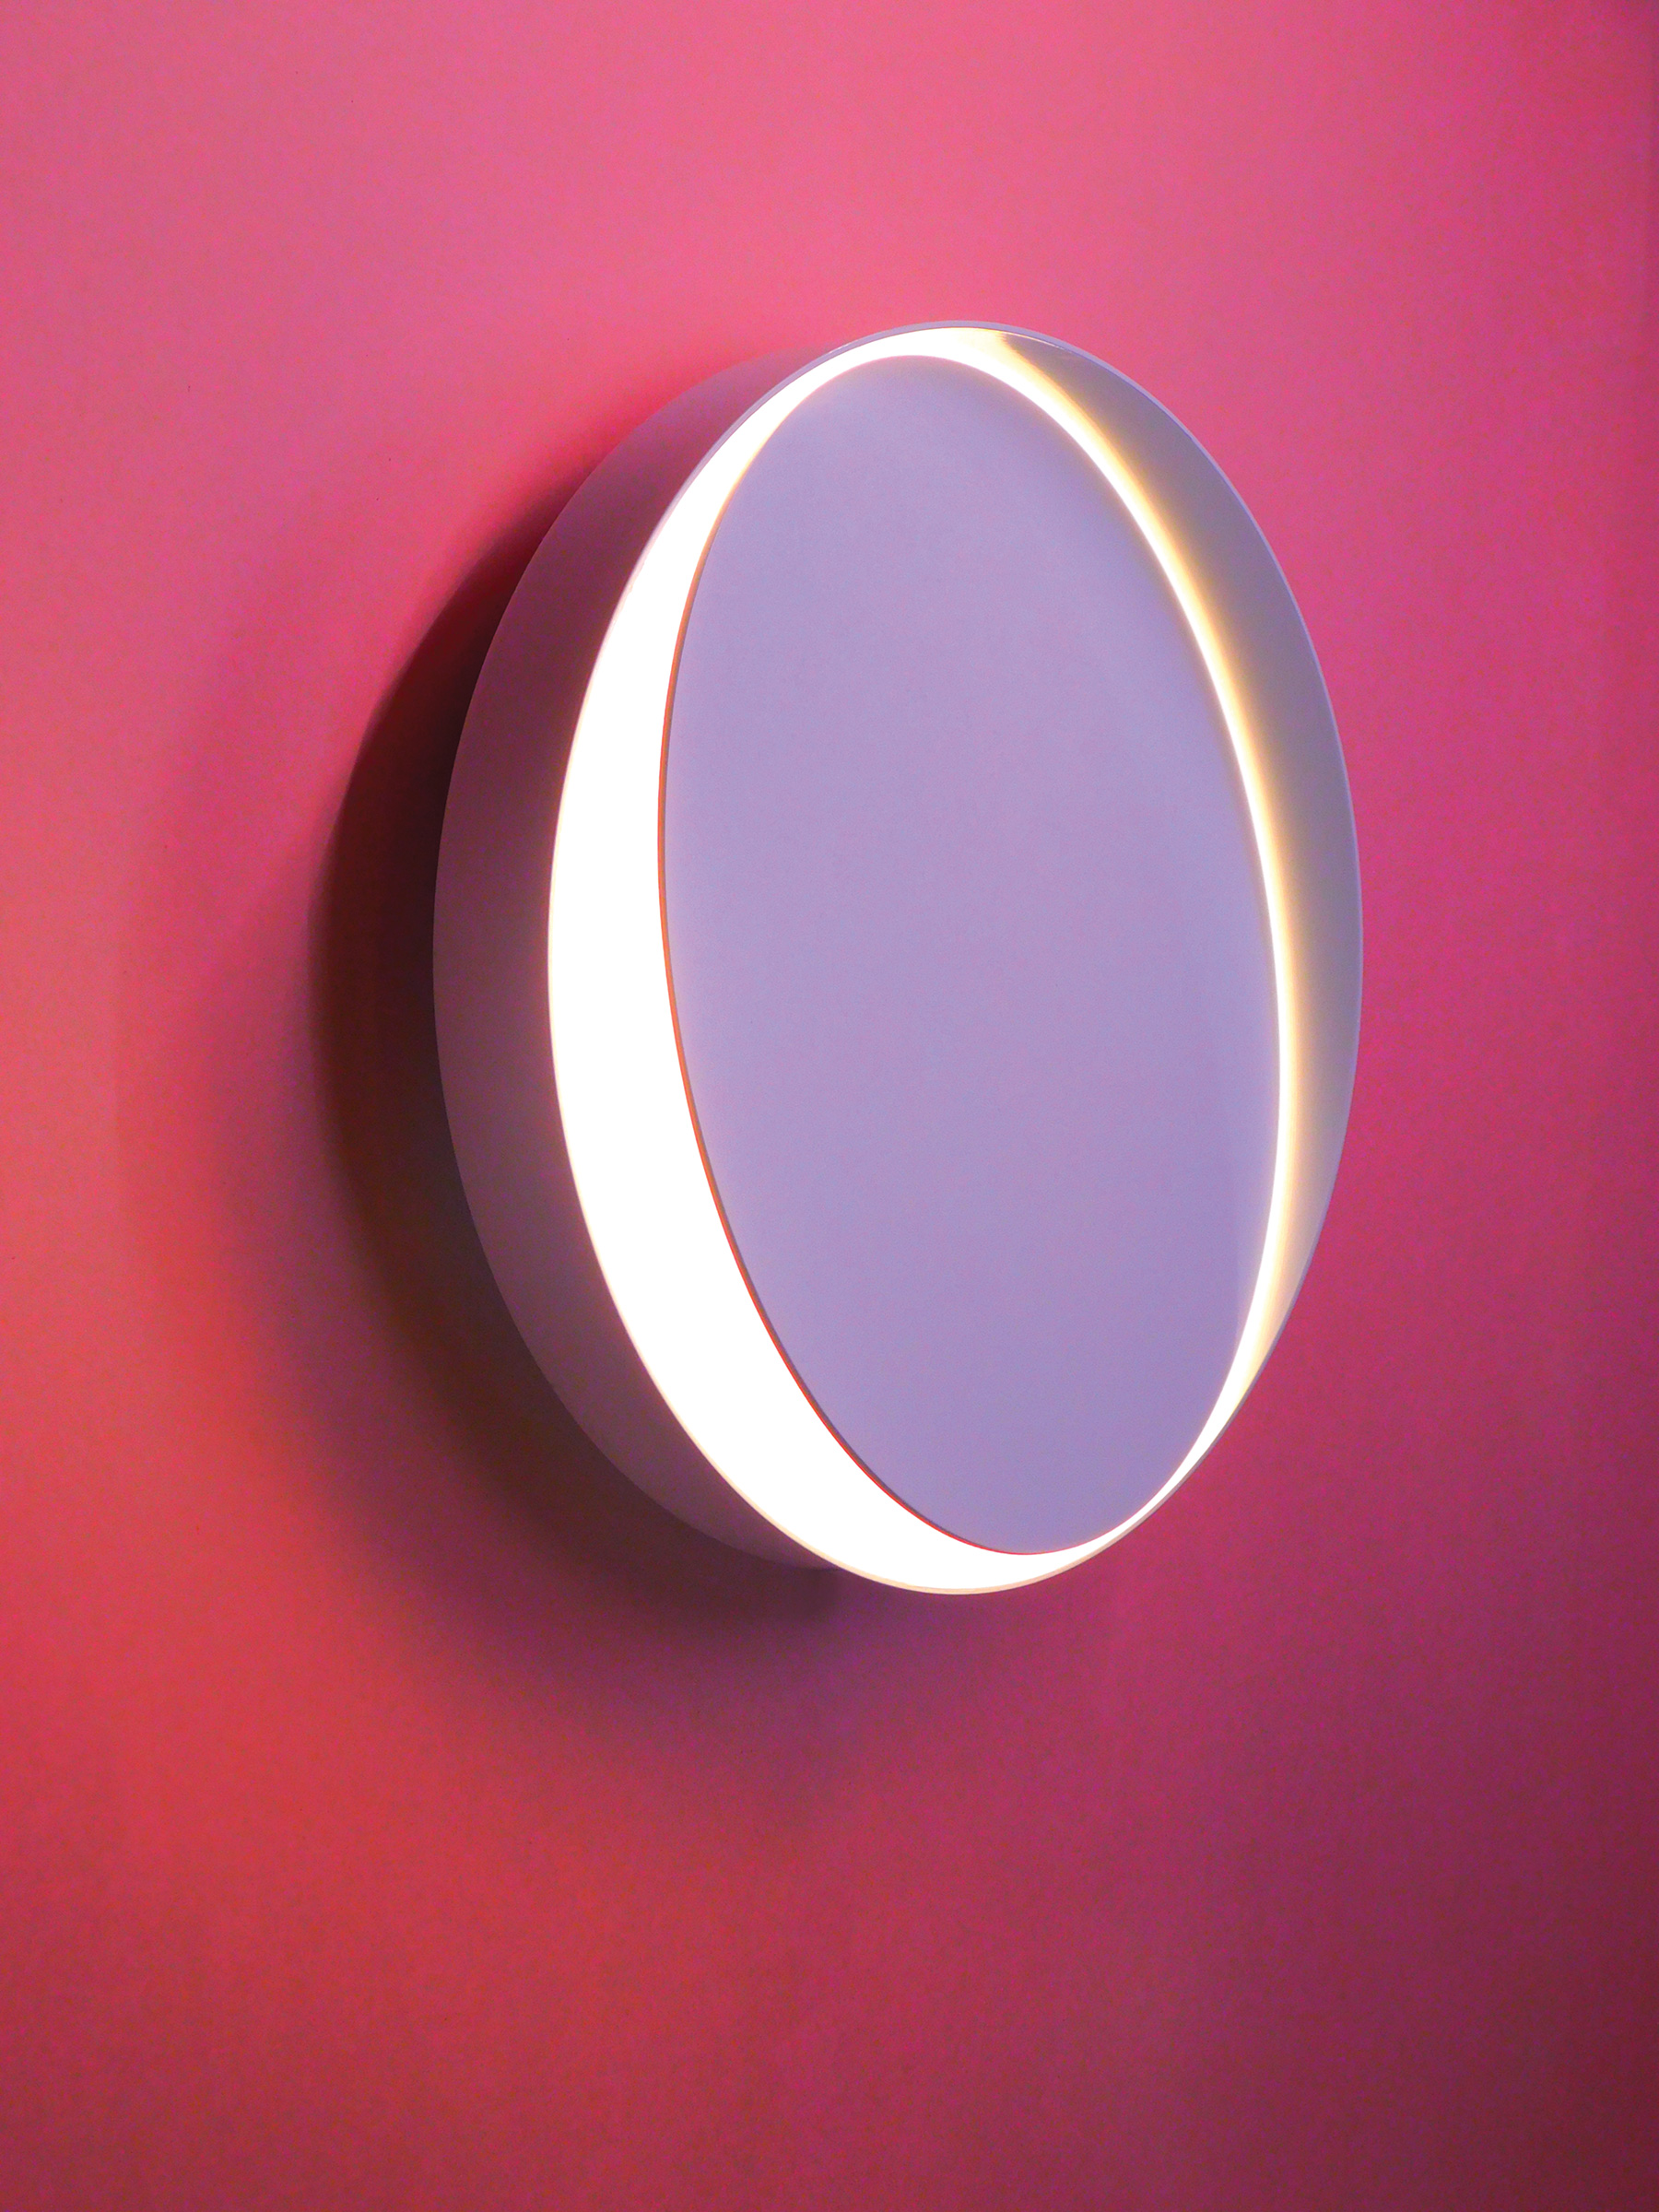 The Horizon wall sconce, by Anony- a minimalist disk with an unbroken ring